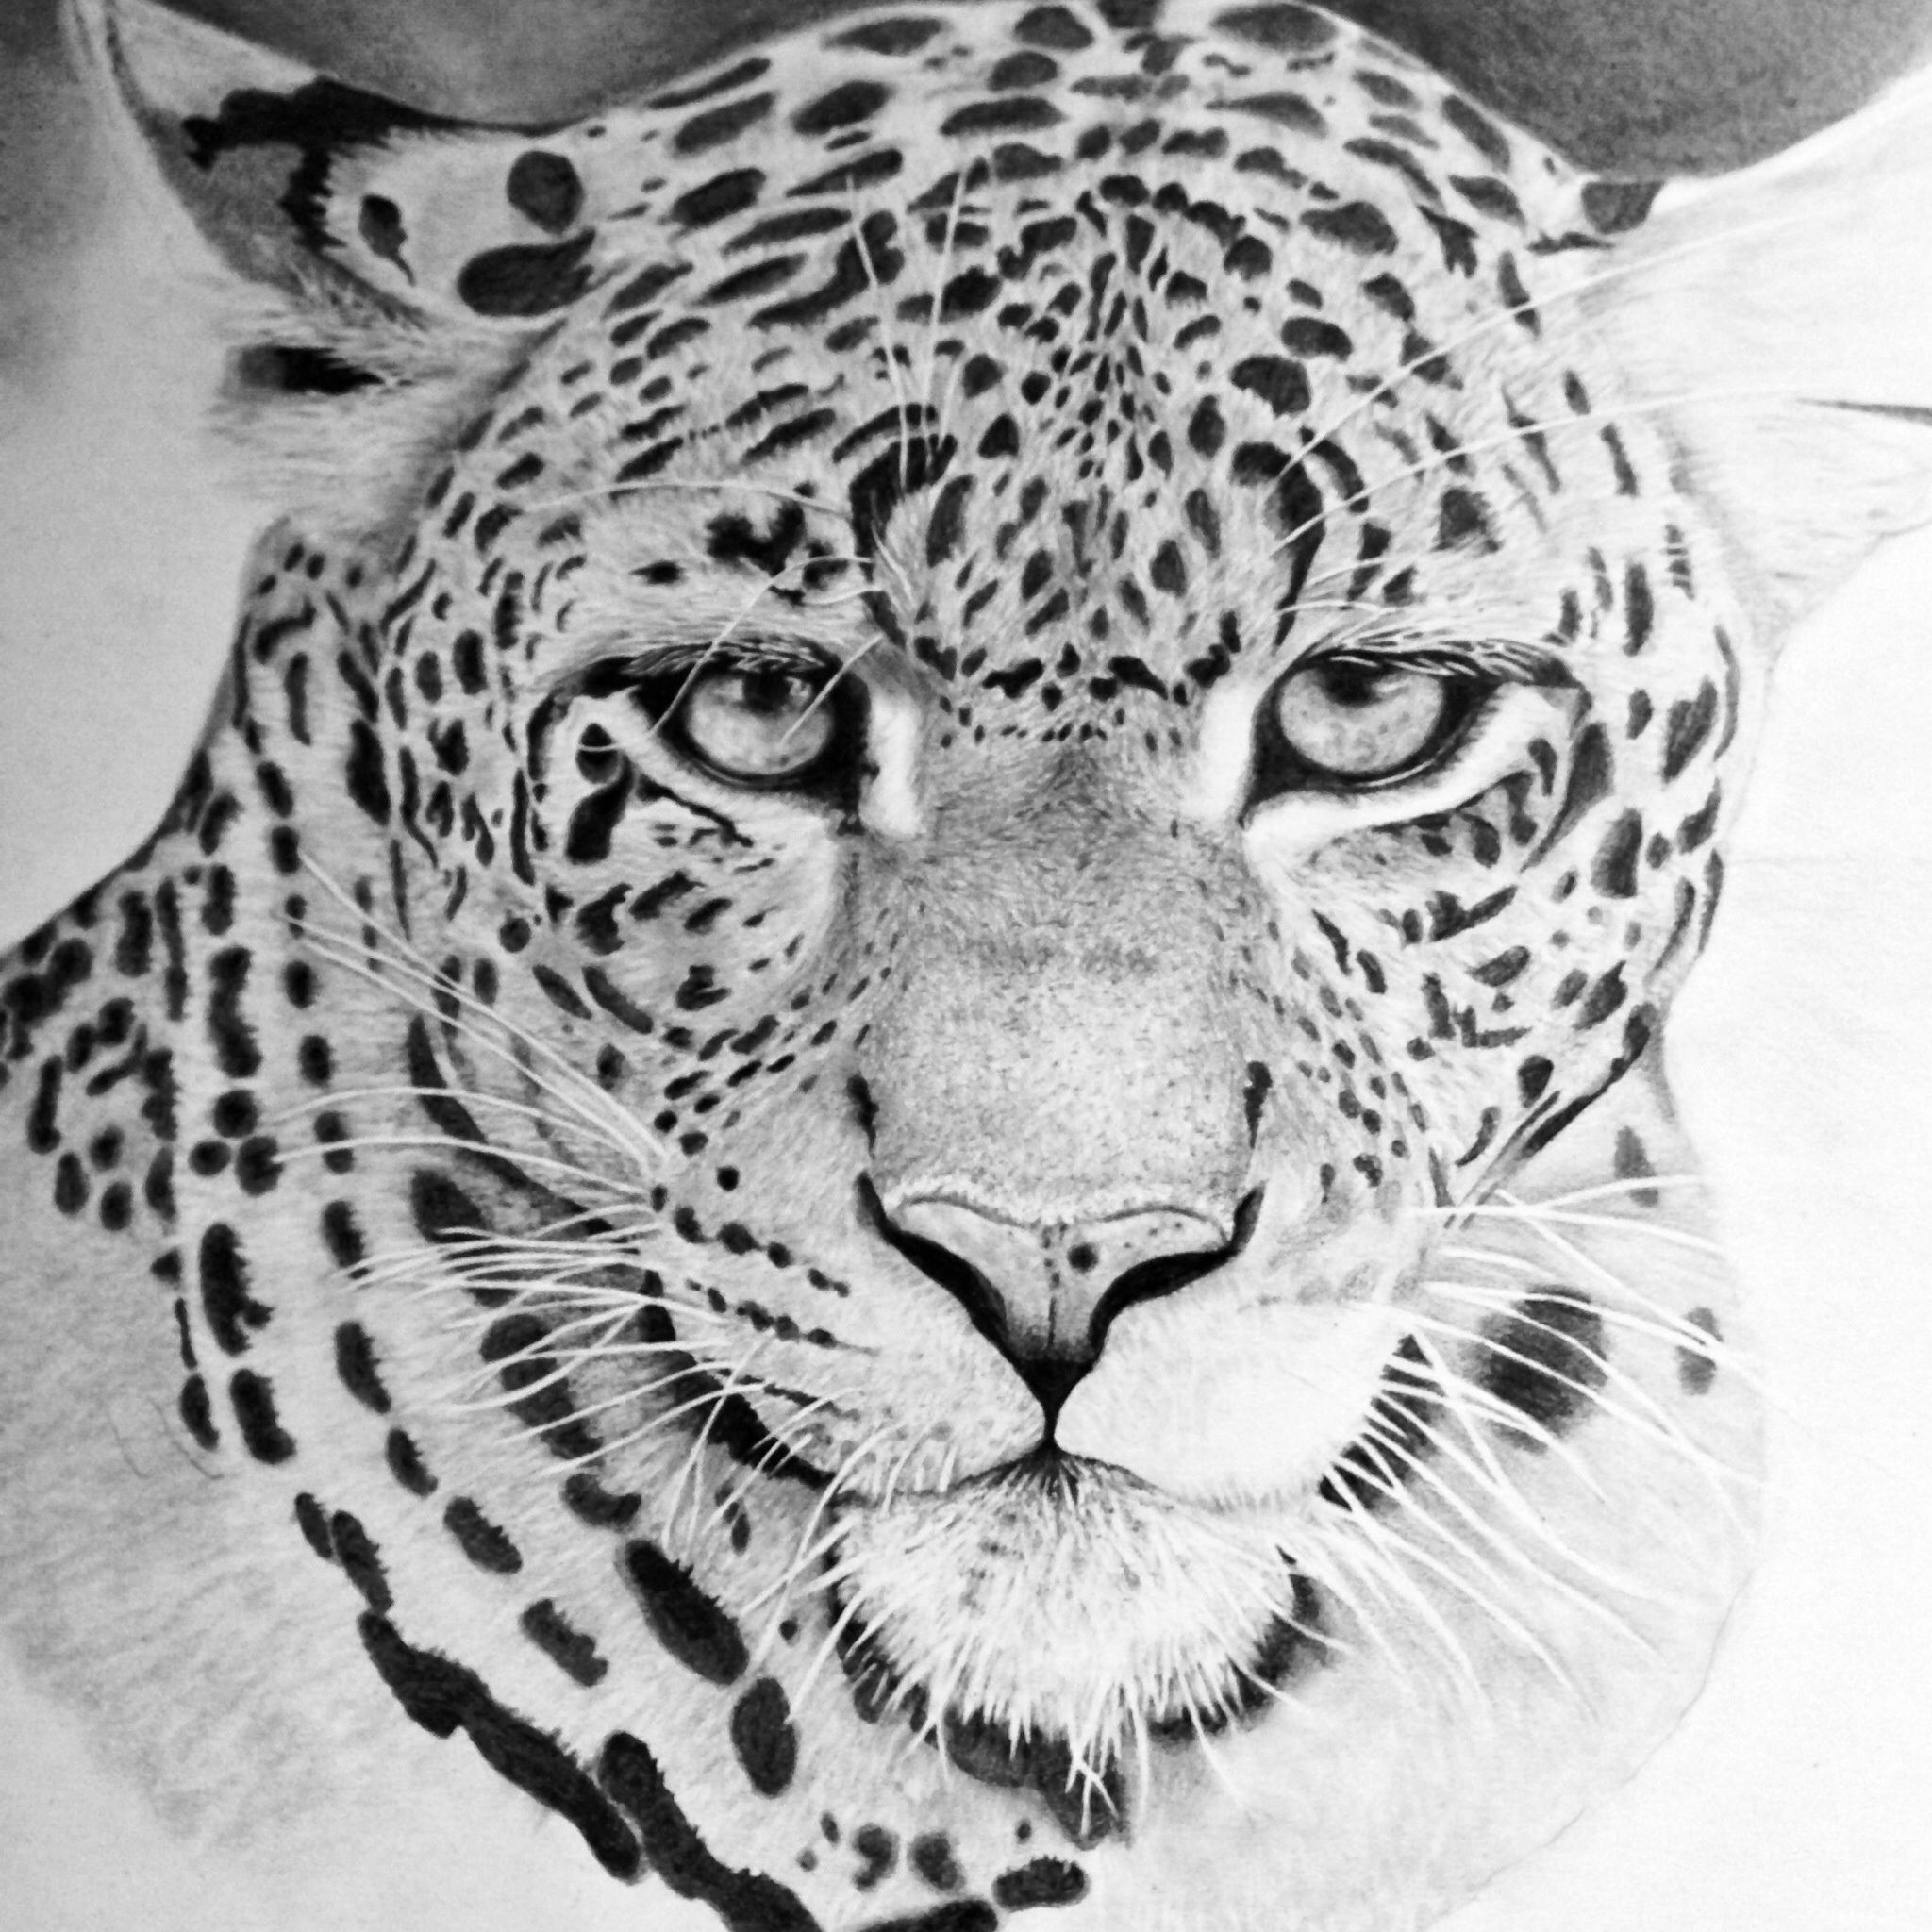 Hyper realistic animal drawing by gallerydeceylon hyper realistic animal drawing by gallerydeceylon